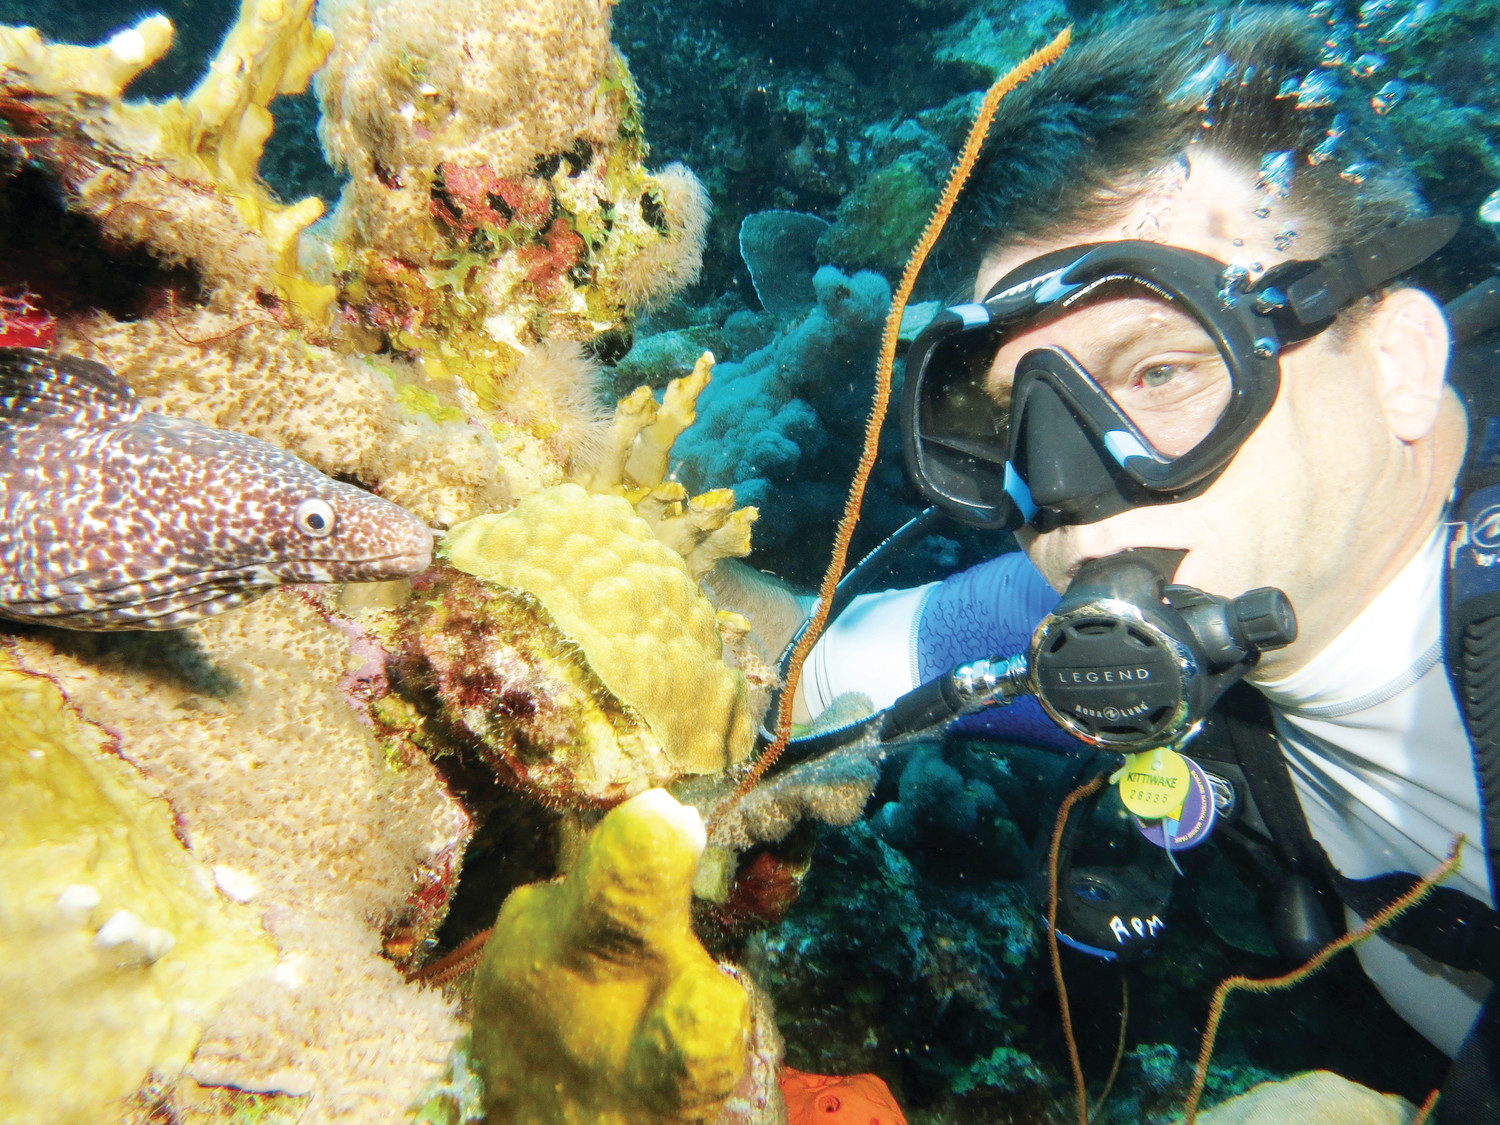 Life golden colorado goldentranscript scuba diving is an opportunity for people in landlocked colorado to explore just a little of xflitez Choice Image